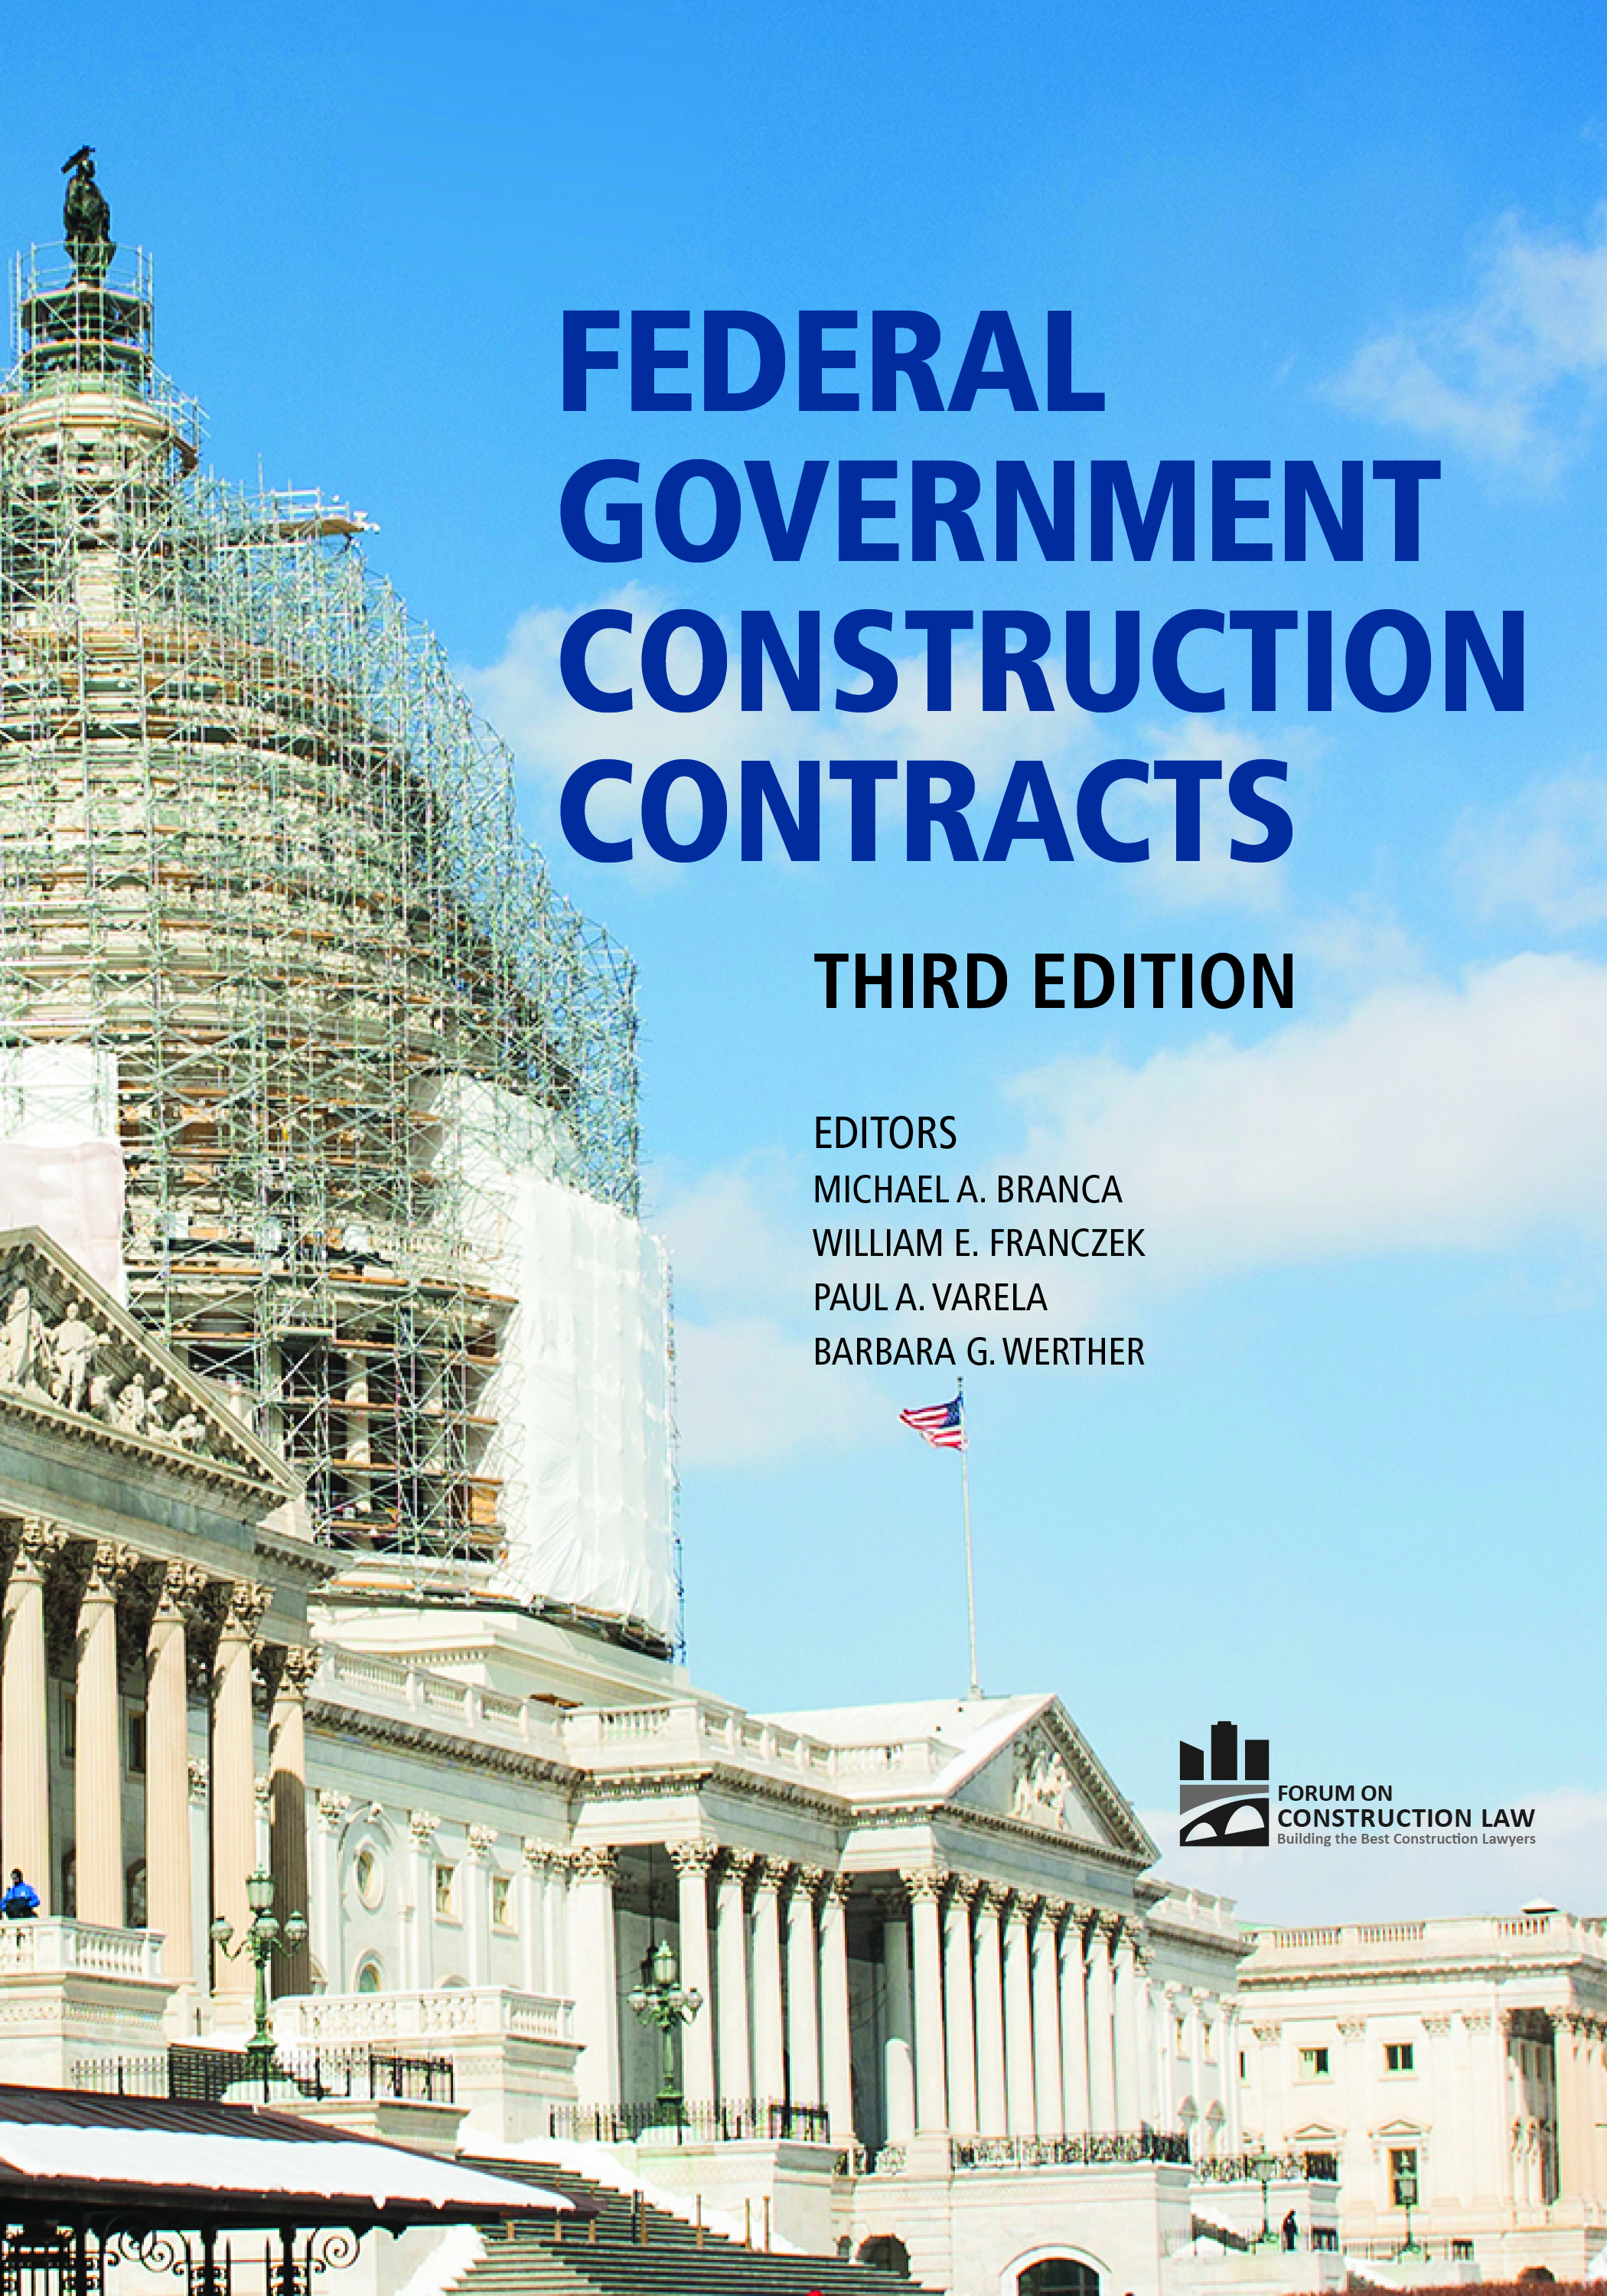 Federal Government Construction Contracts, Third Edition